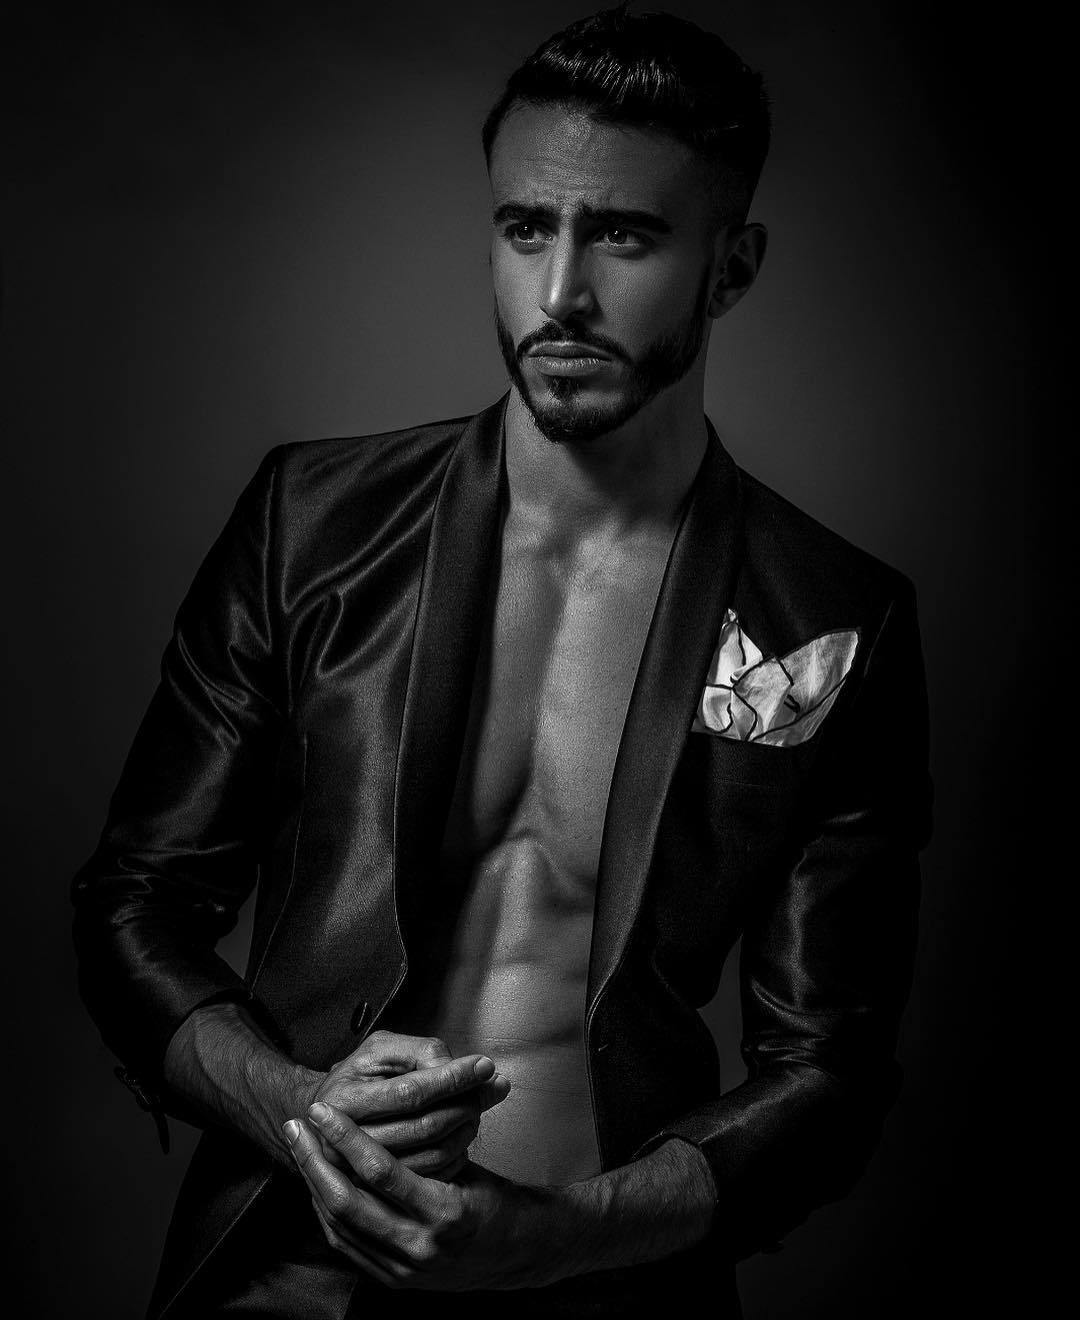 Marco Ferri by Andres Cabezas